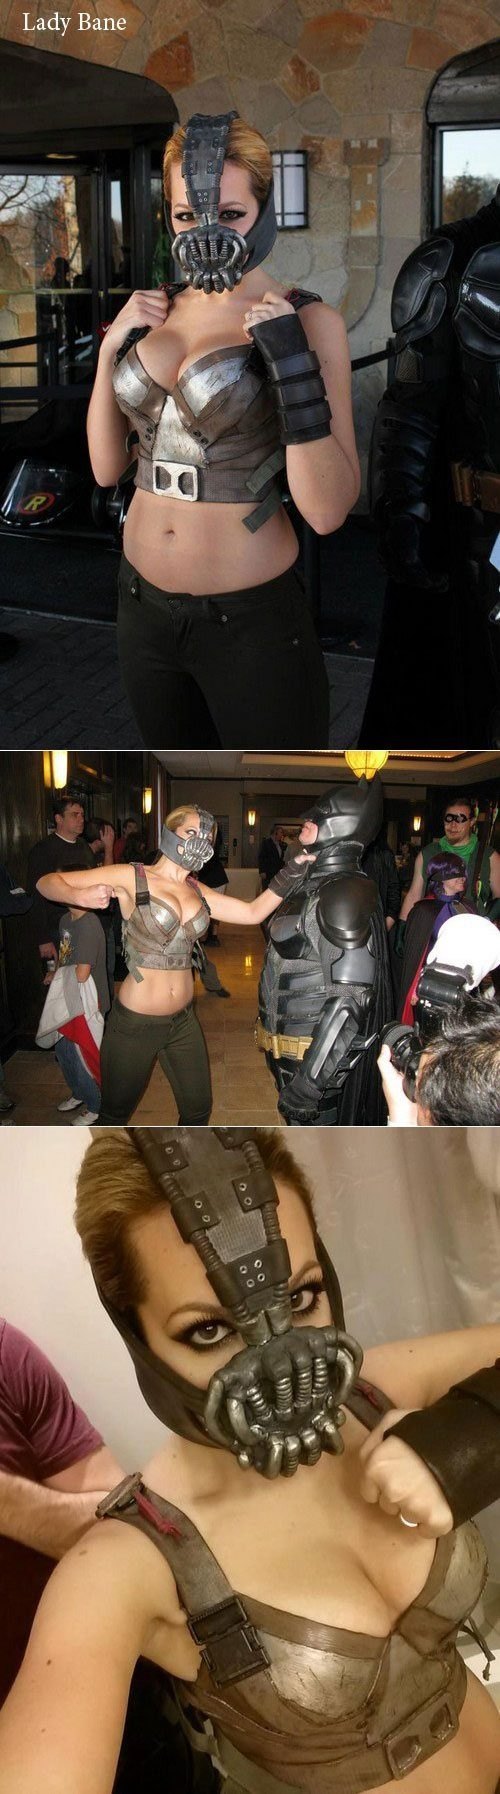 This is my Lady Bane costume worn at Super Megafest 2012. More costumes at http://www.facebook.com/nicolemariejeanpage